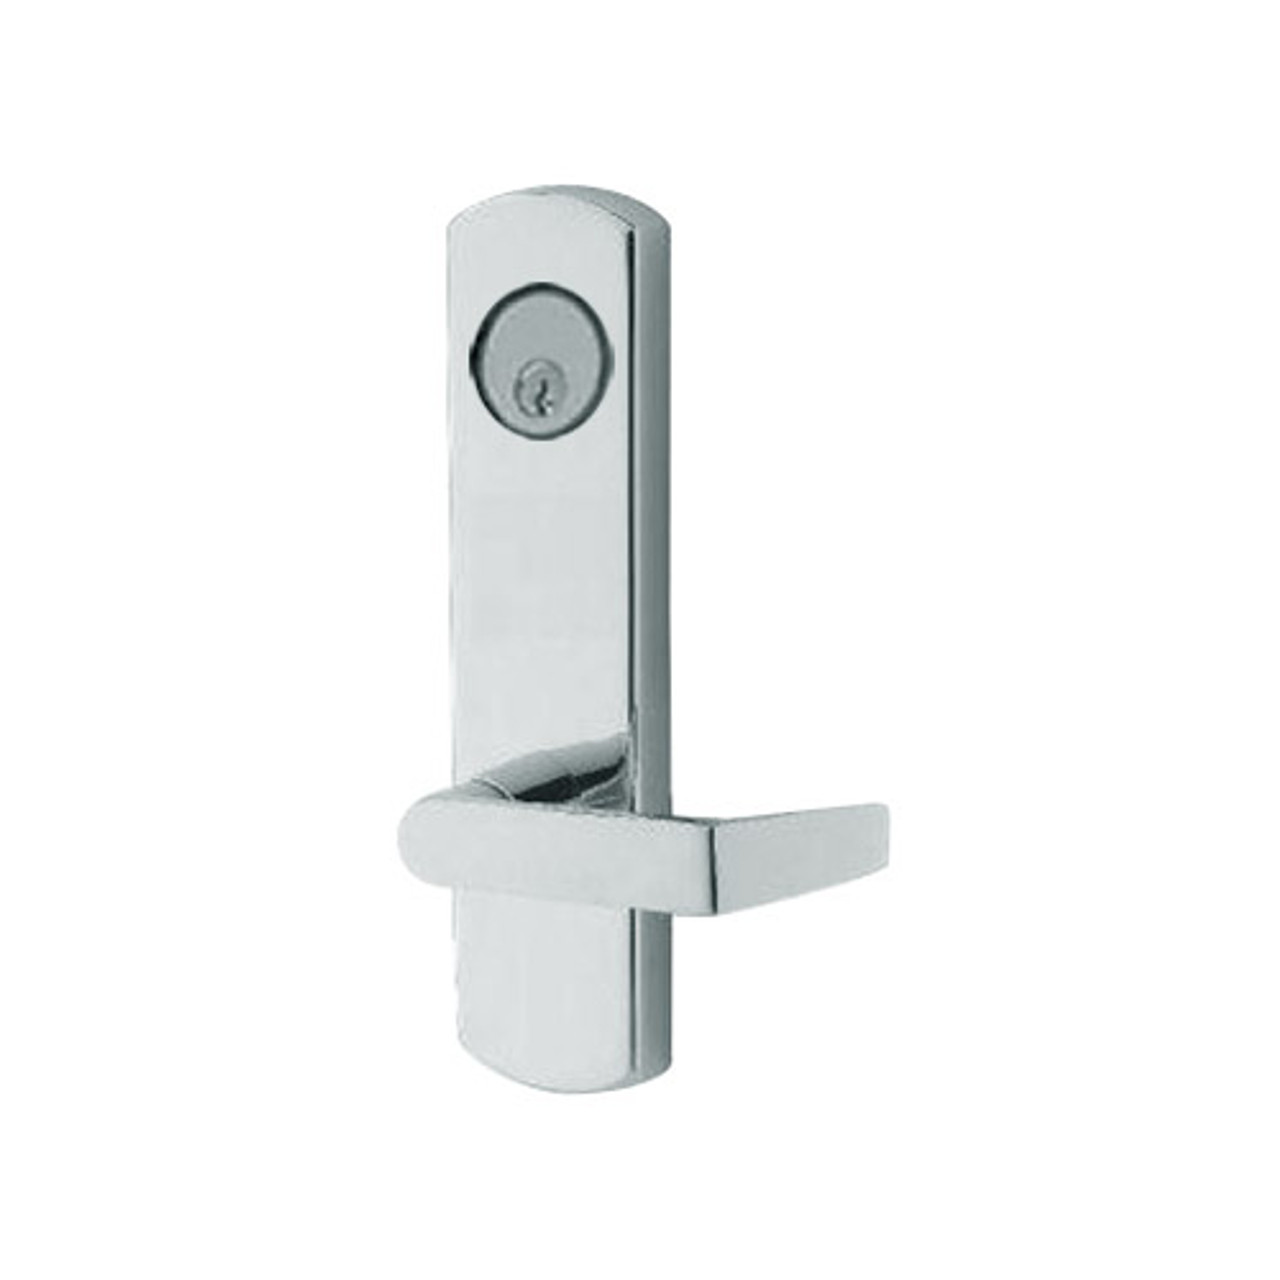 3080-03-0-91-US32 Adams Rite Standard Entry Trim with Square Lever in Bright Stainless Finish